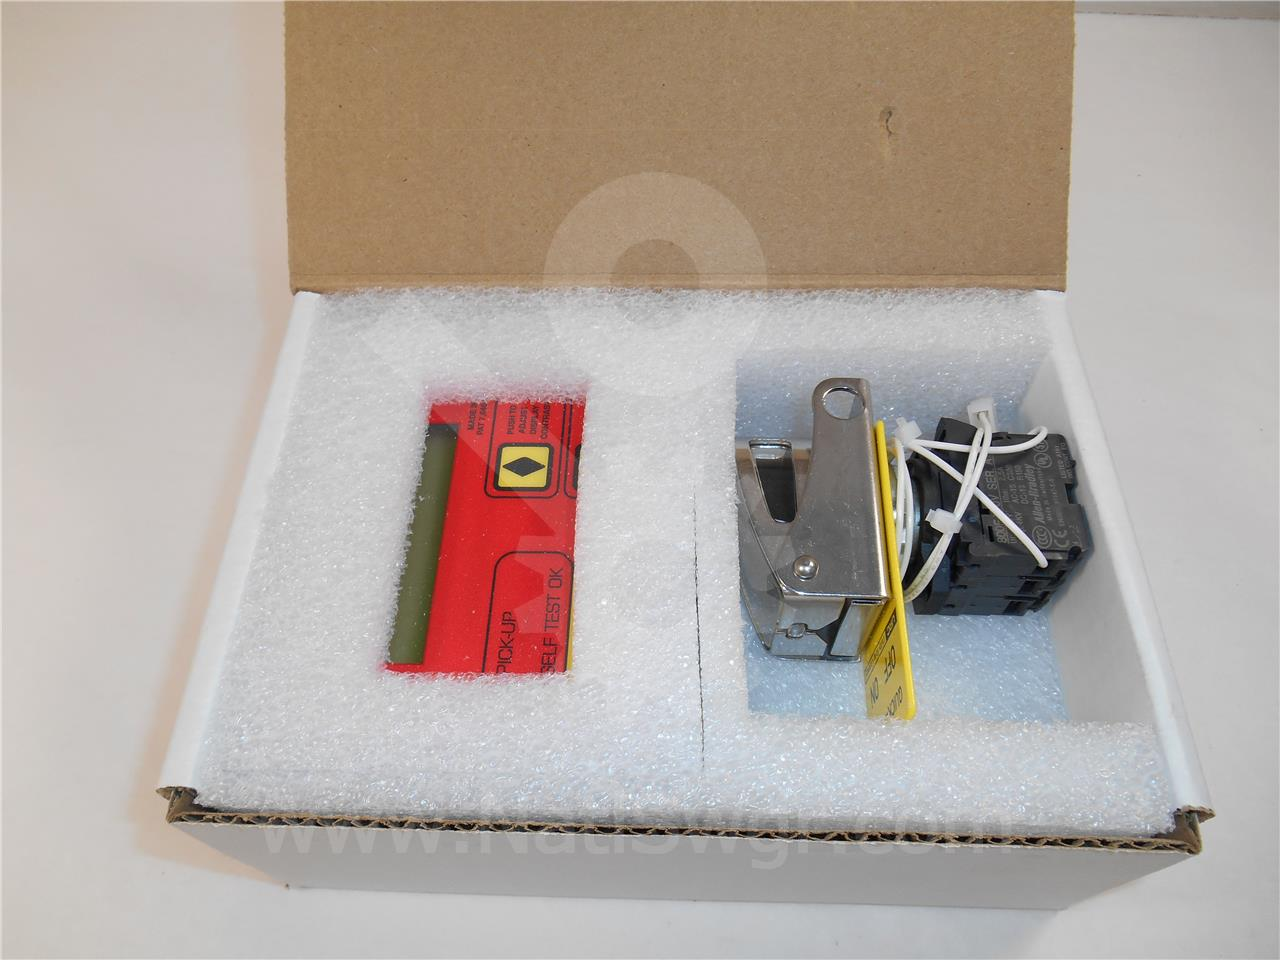 NSS ARC FLASH DISPLAY ENCLOSURE KIT FOR USE WITH URC AC PRO